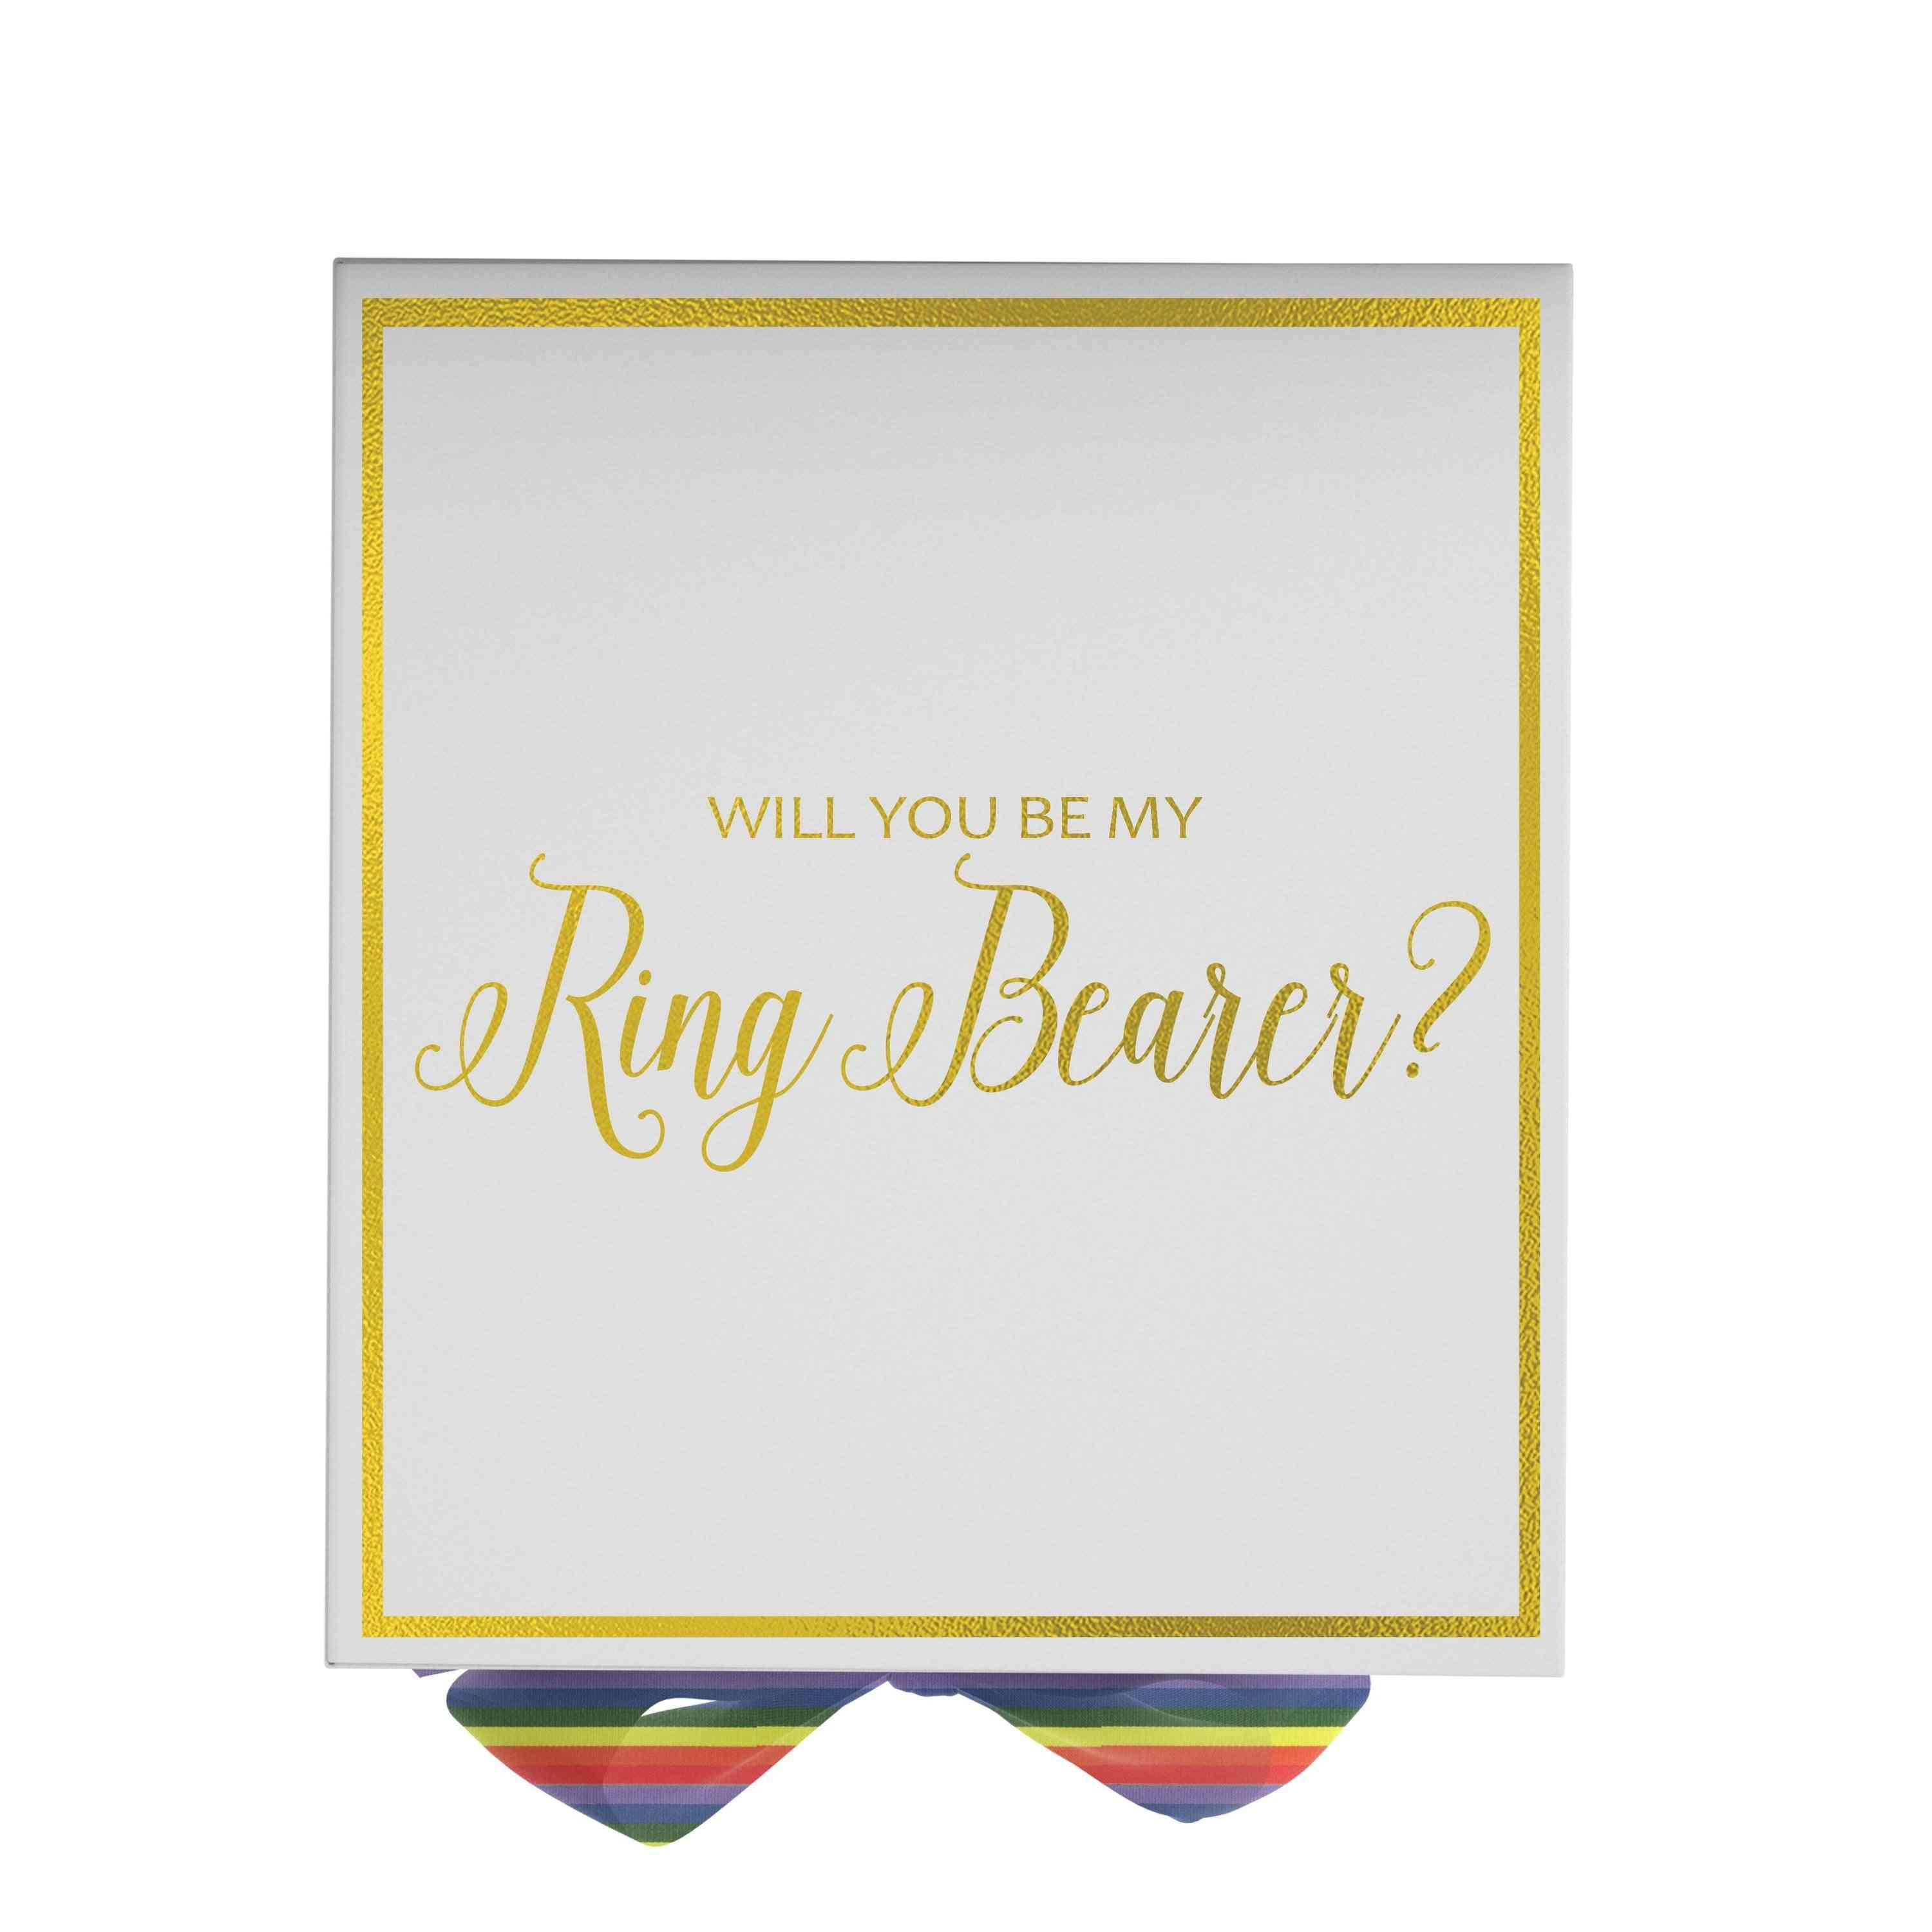 Will You Be My Ring Bearer? Proposal Box White -  Border - Rainbow